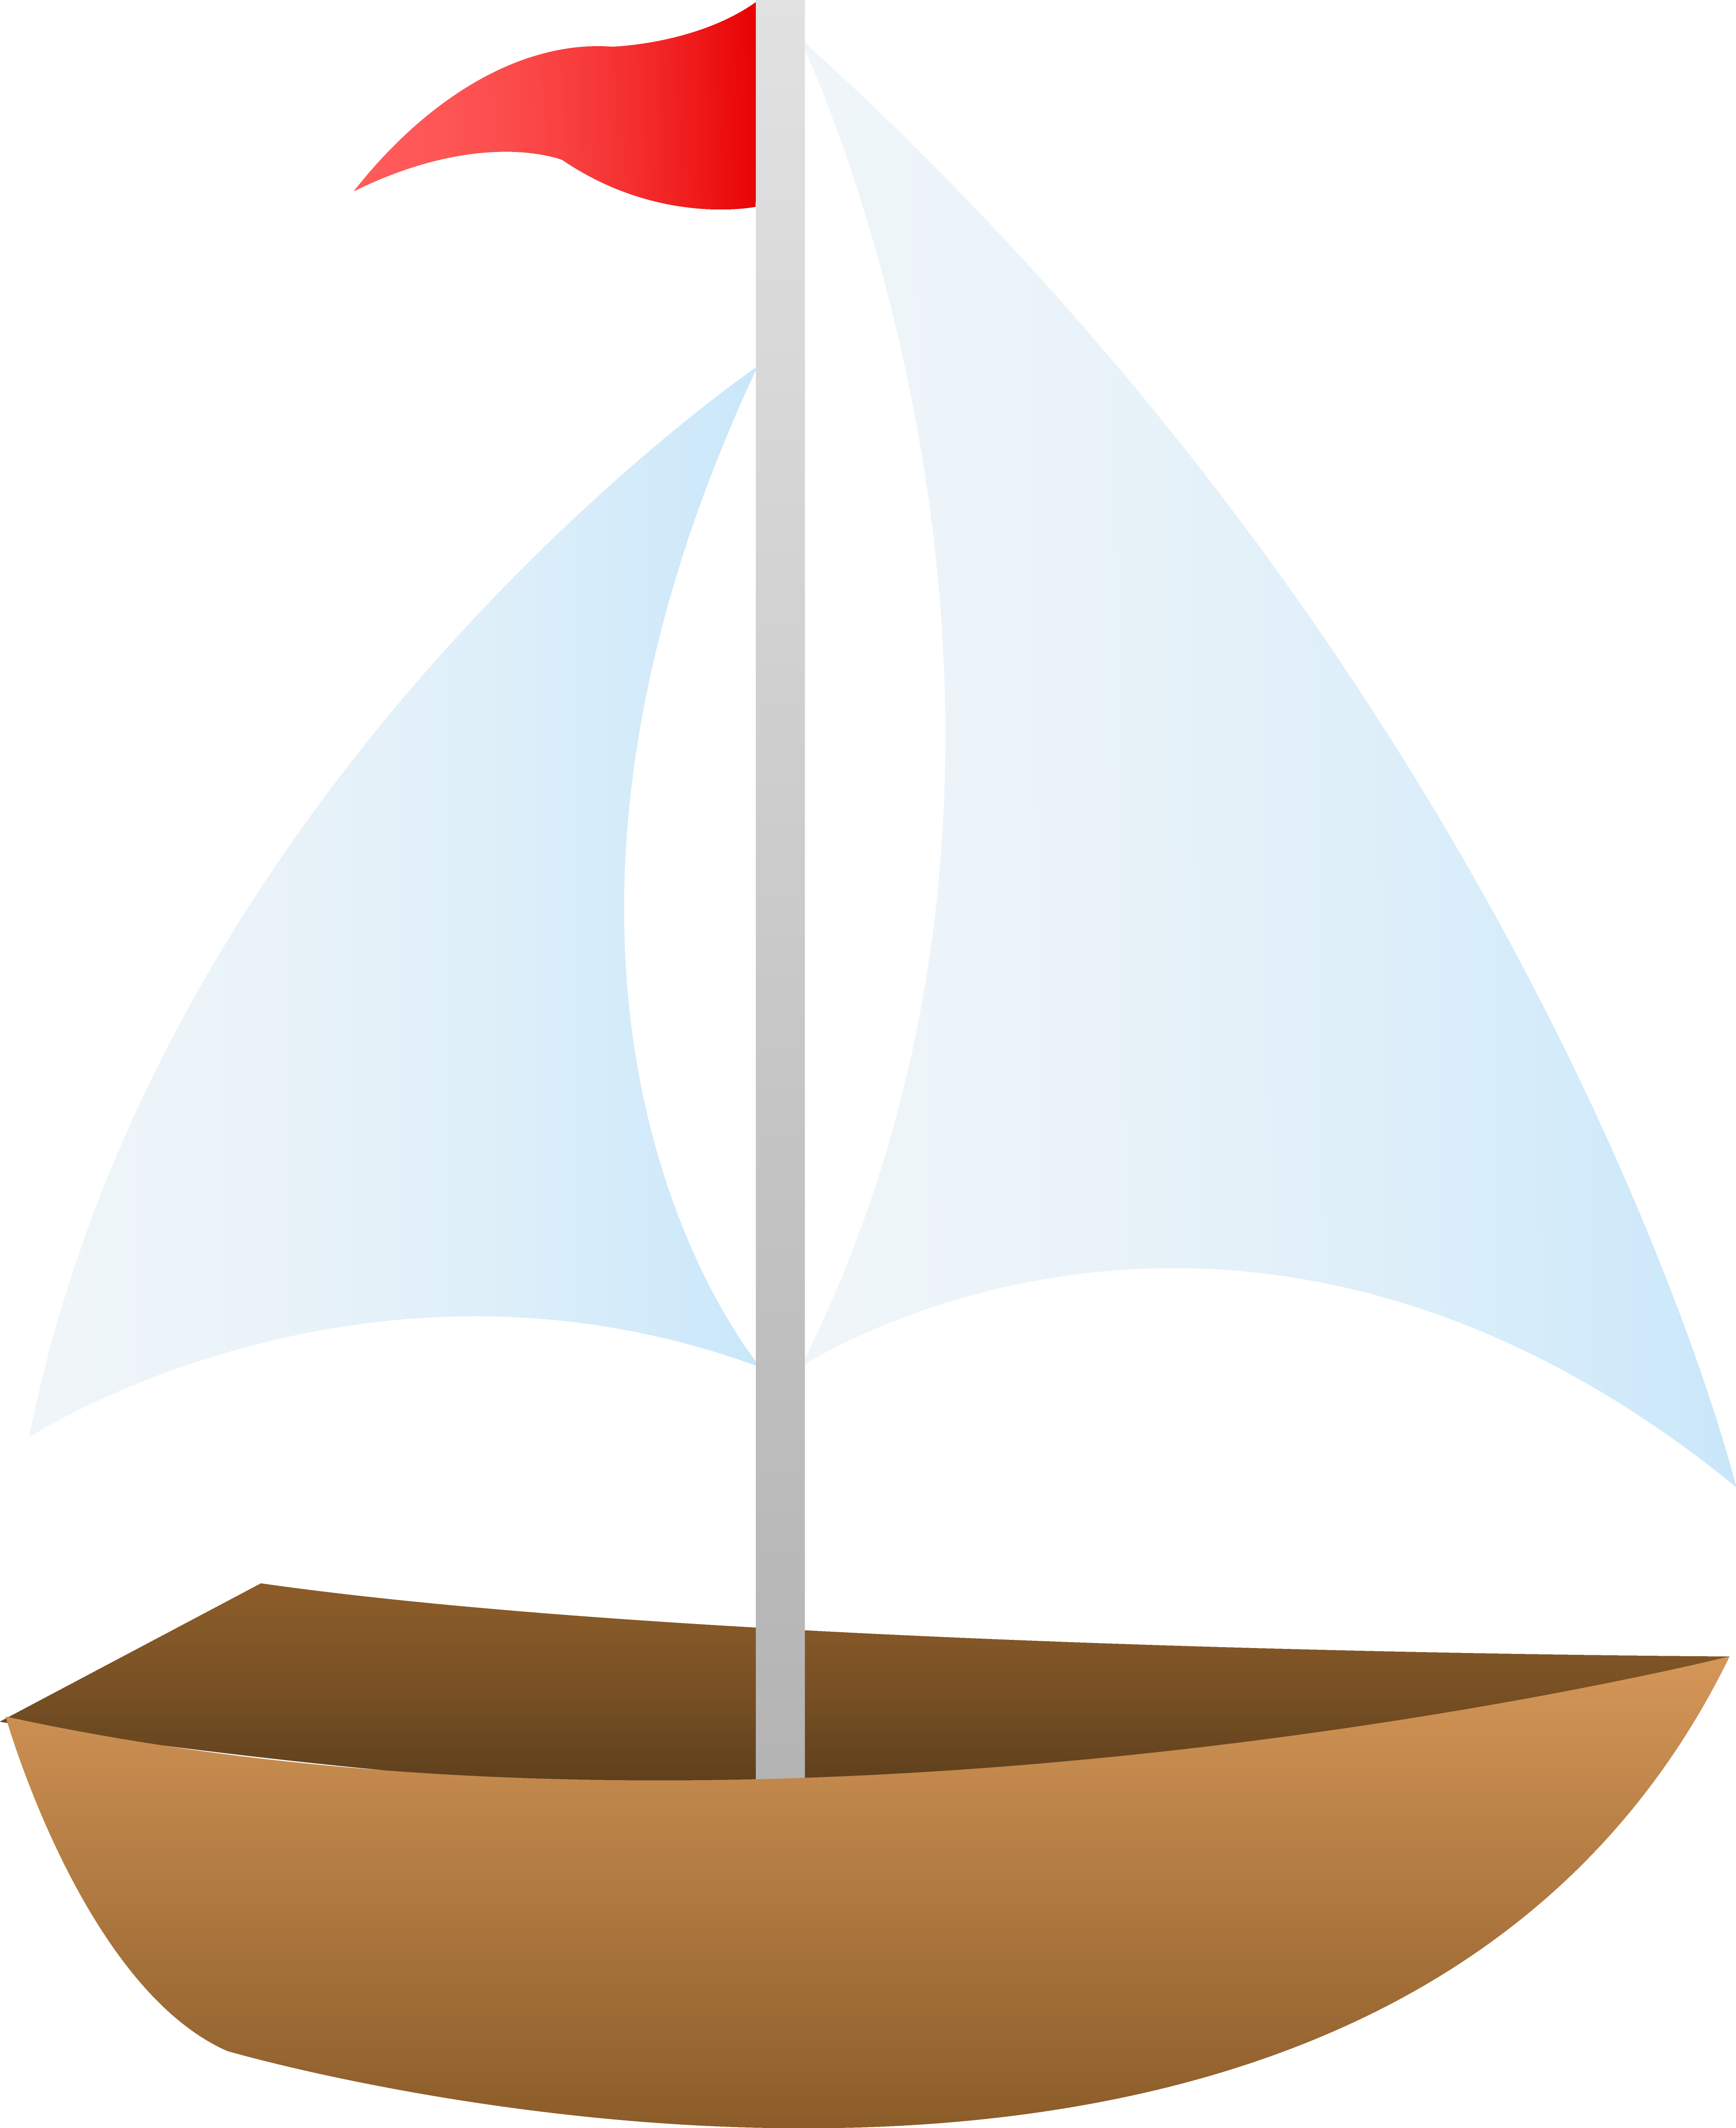 Animated Boat Clipart Boat Clip Art-Animated Boat Clipart Boat Clip Art-0